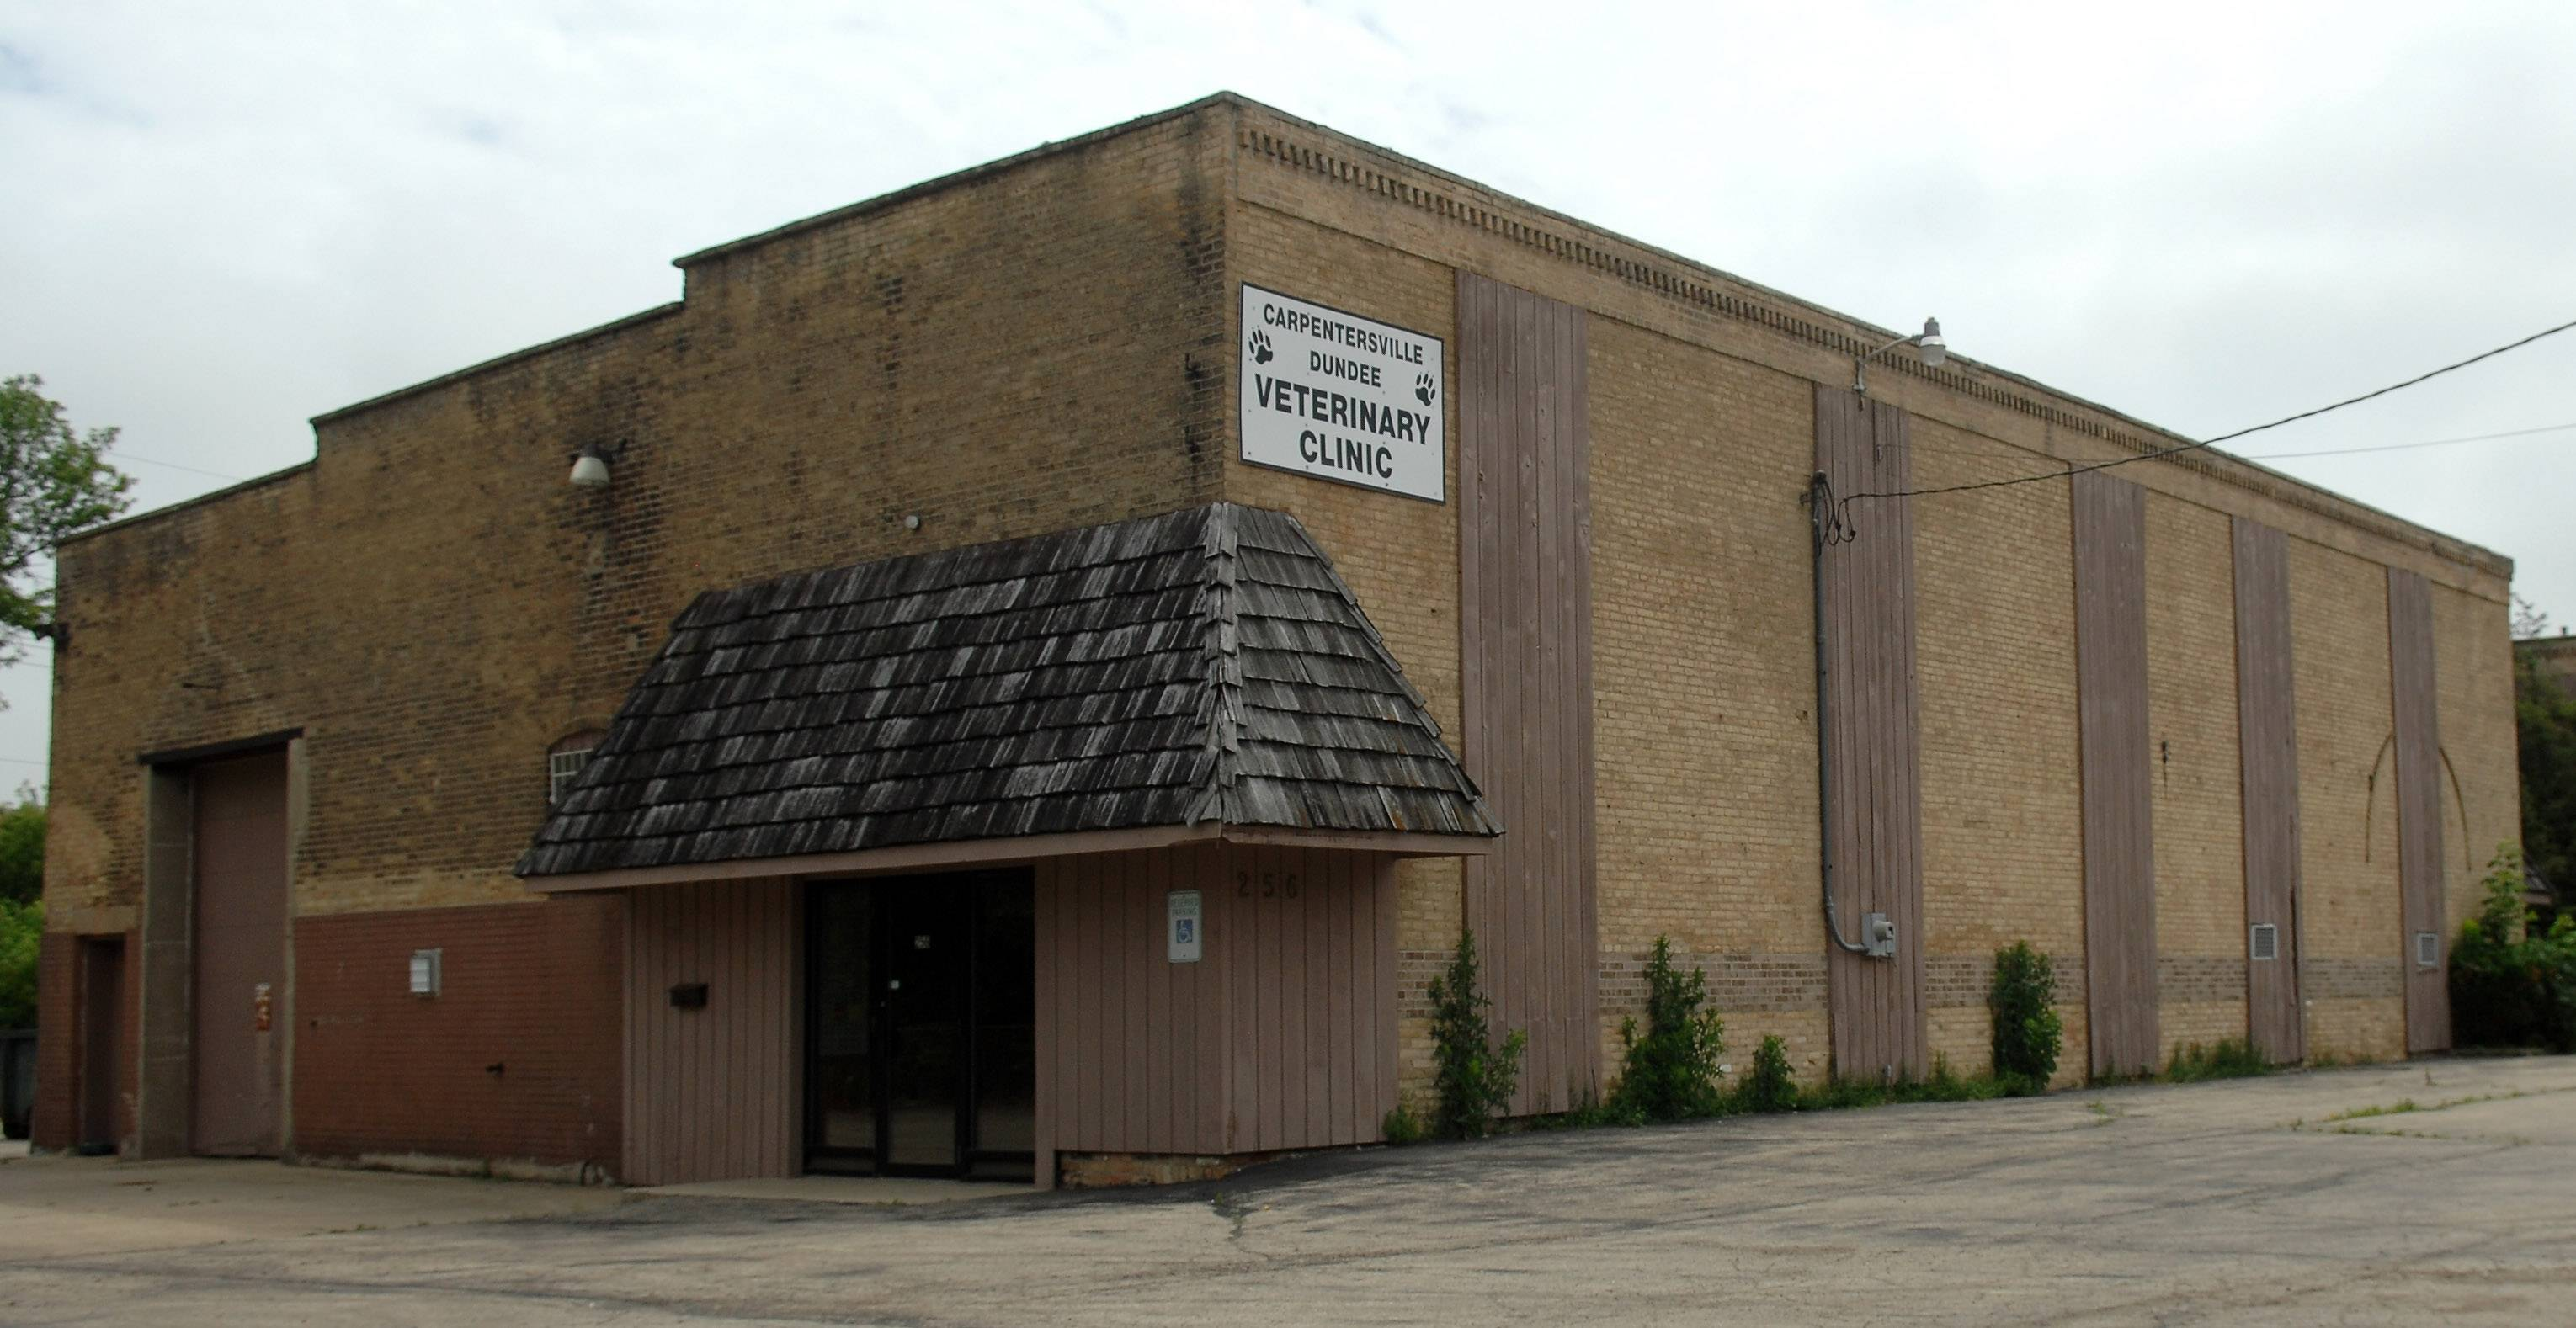 Two buildings associated with what used to be the Milk Specialties Co. in Carpentersville, are undergoing an extensive renovation that should be done by the end of 2015.